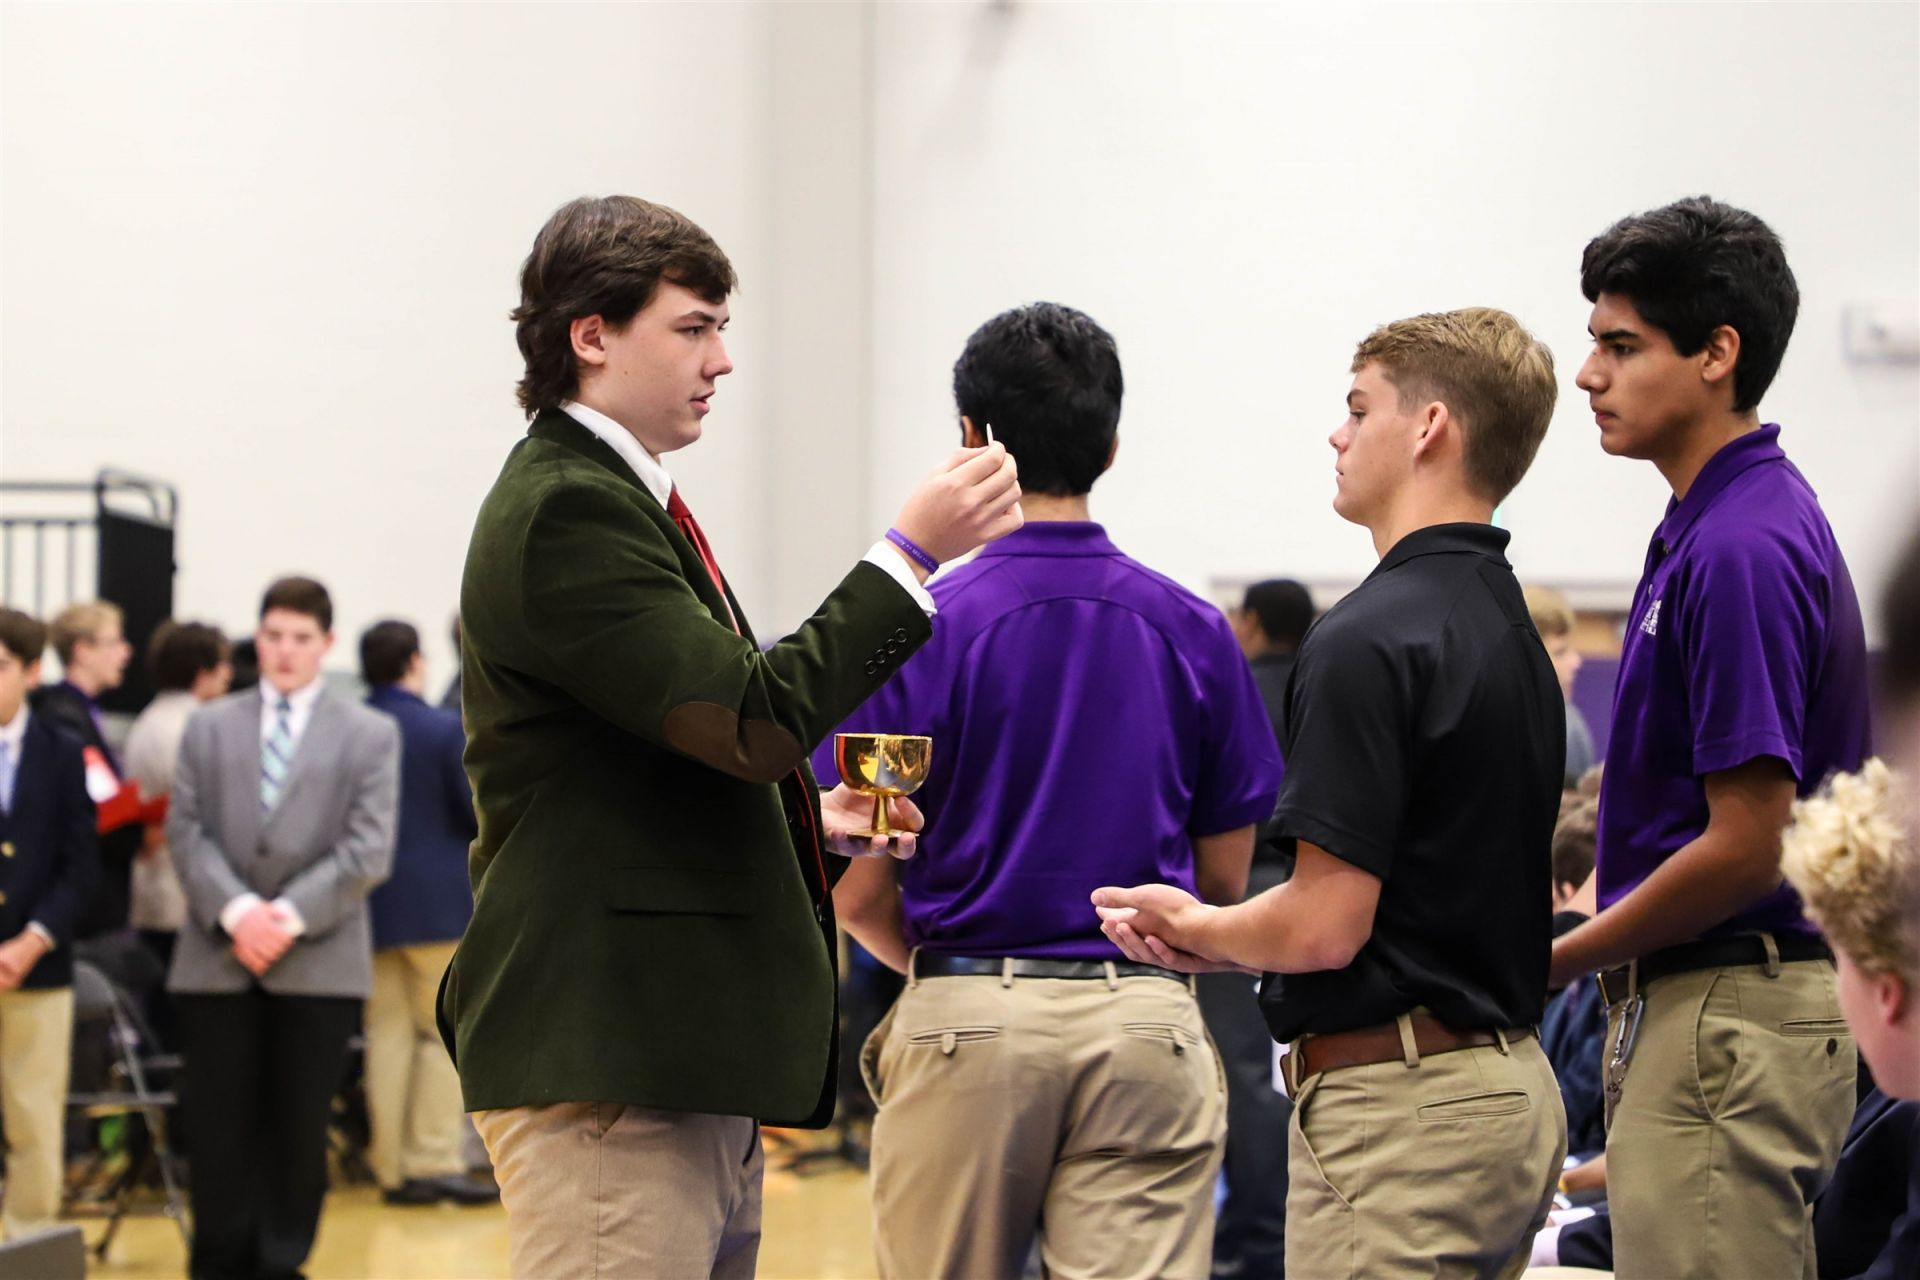 Students, faculty, and staff celebrate Opening Mass to start the school year.